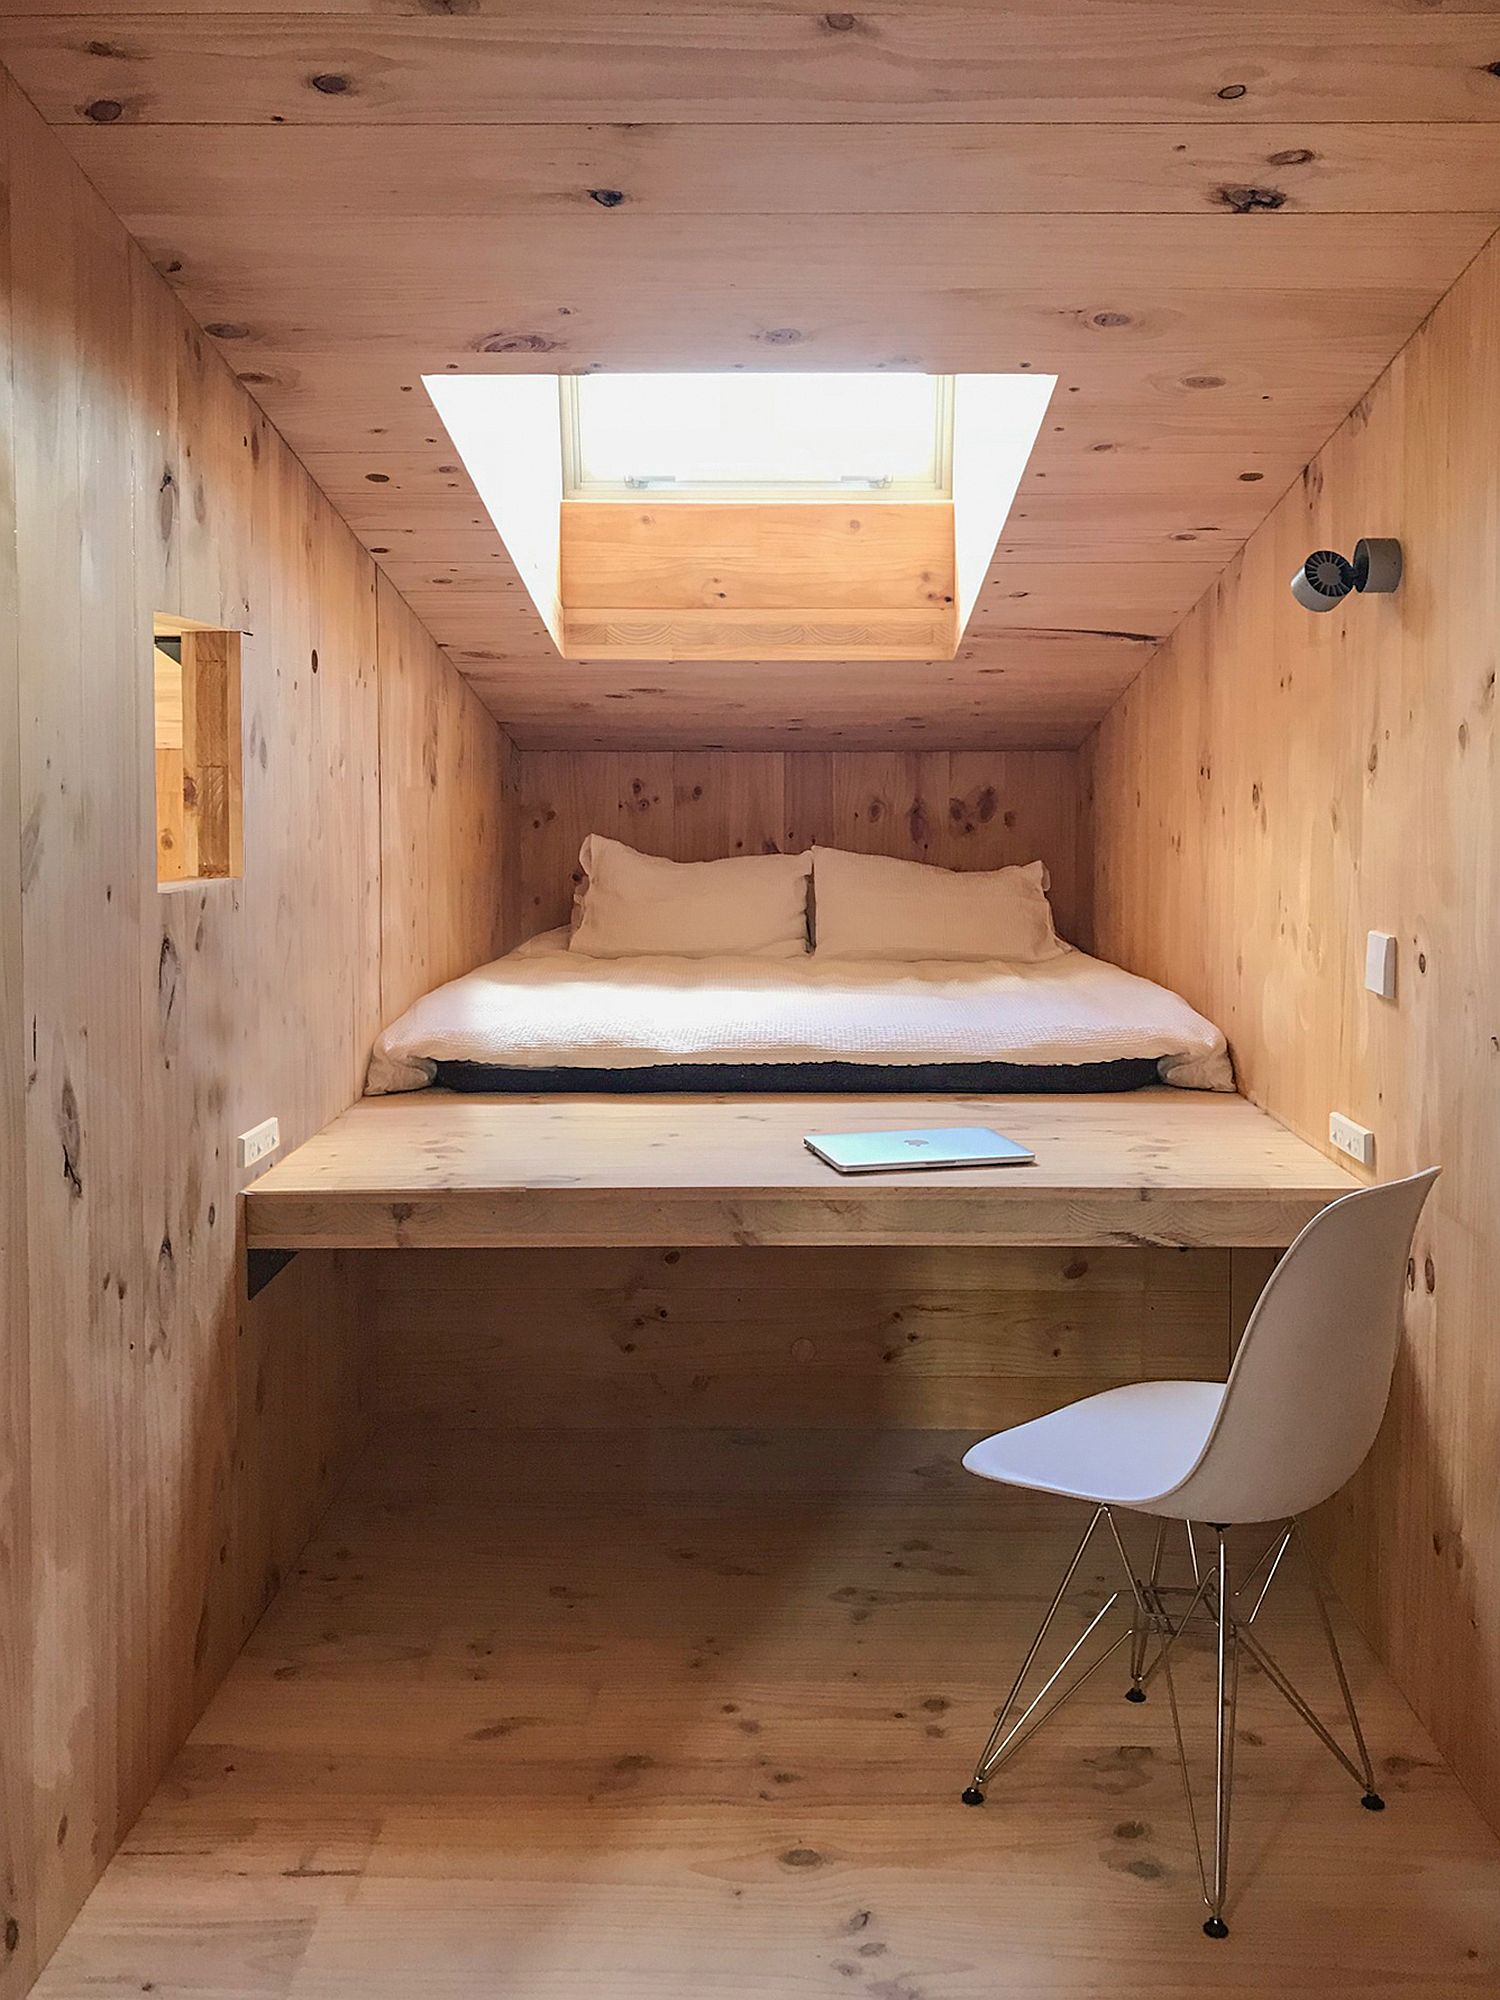 Niche with a bed that can also be used as work table with natural lighting